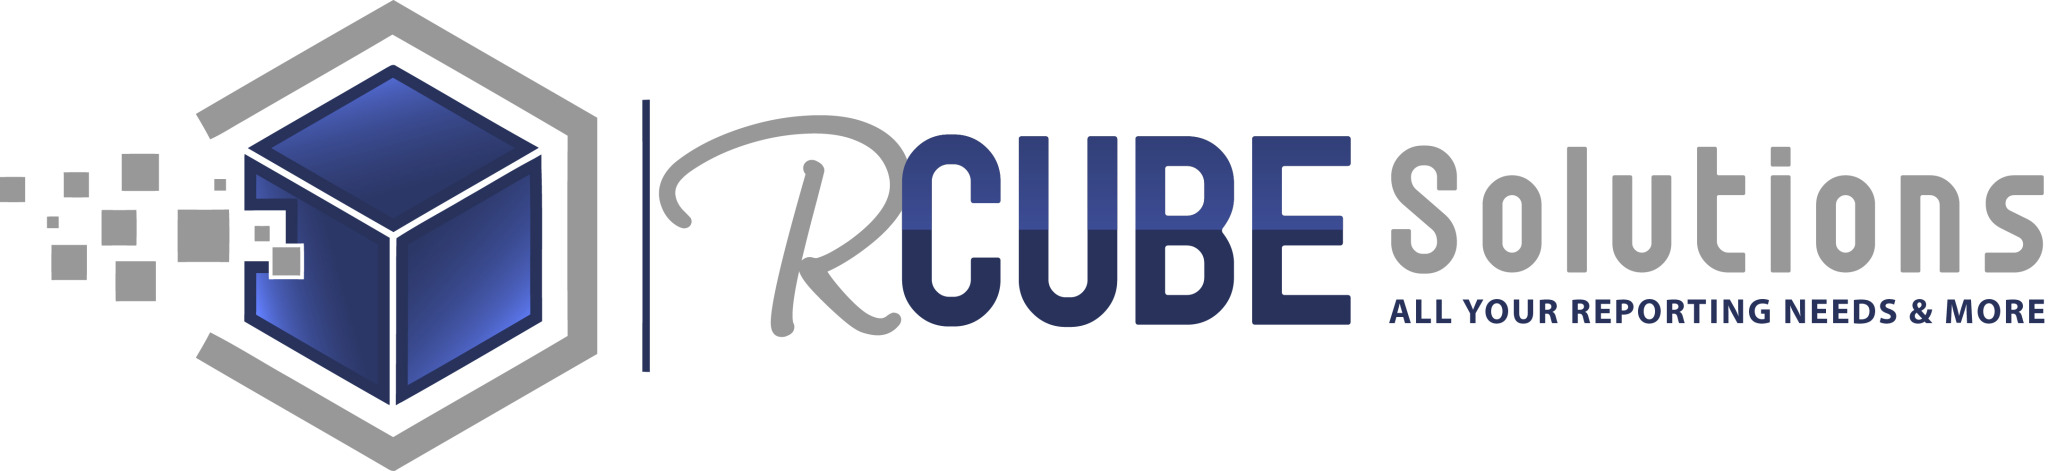 RCUBE Solutions